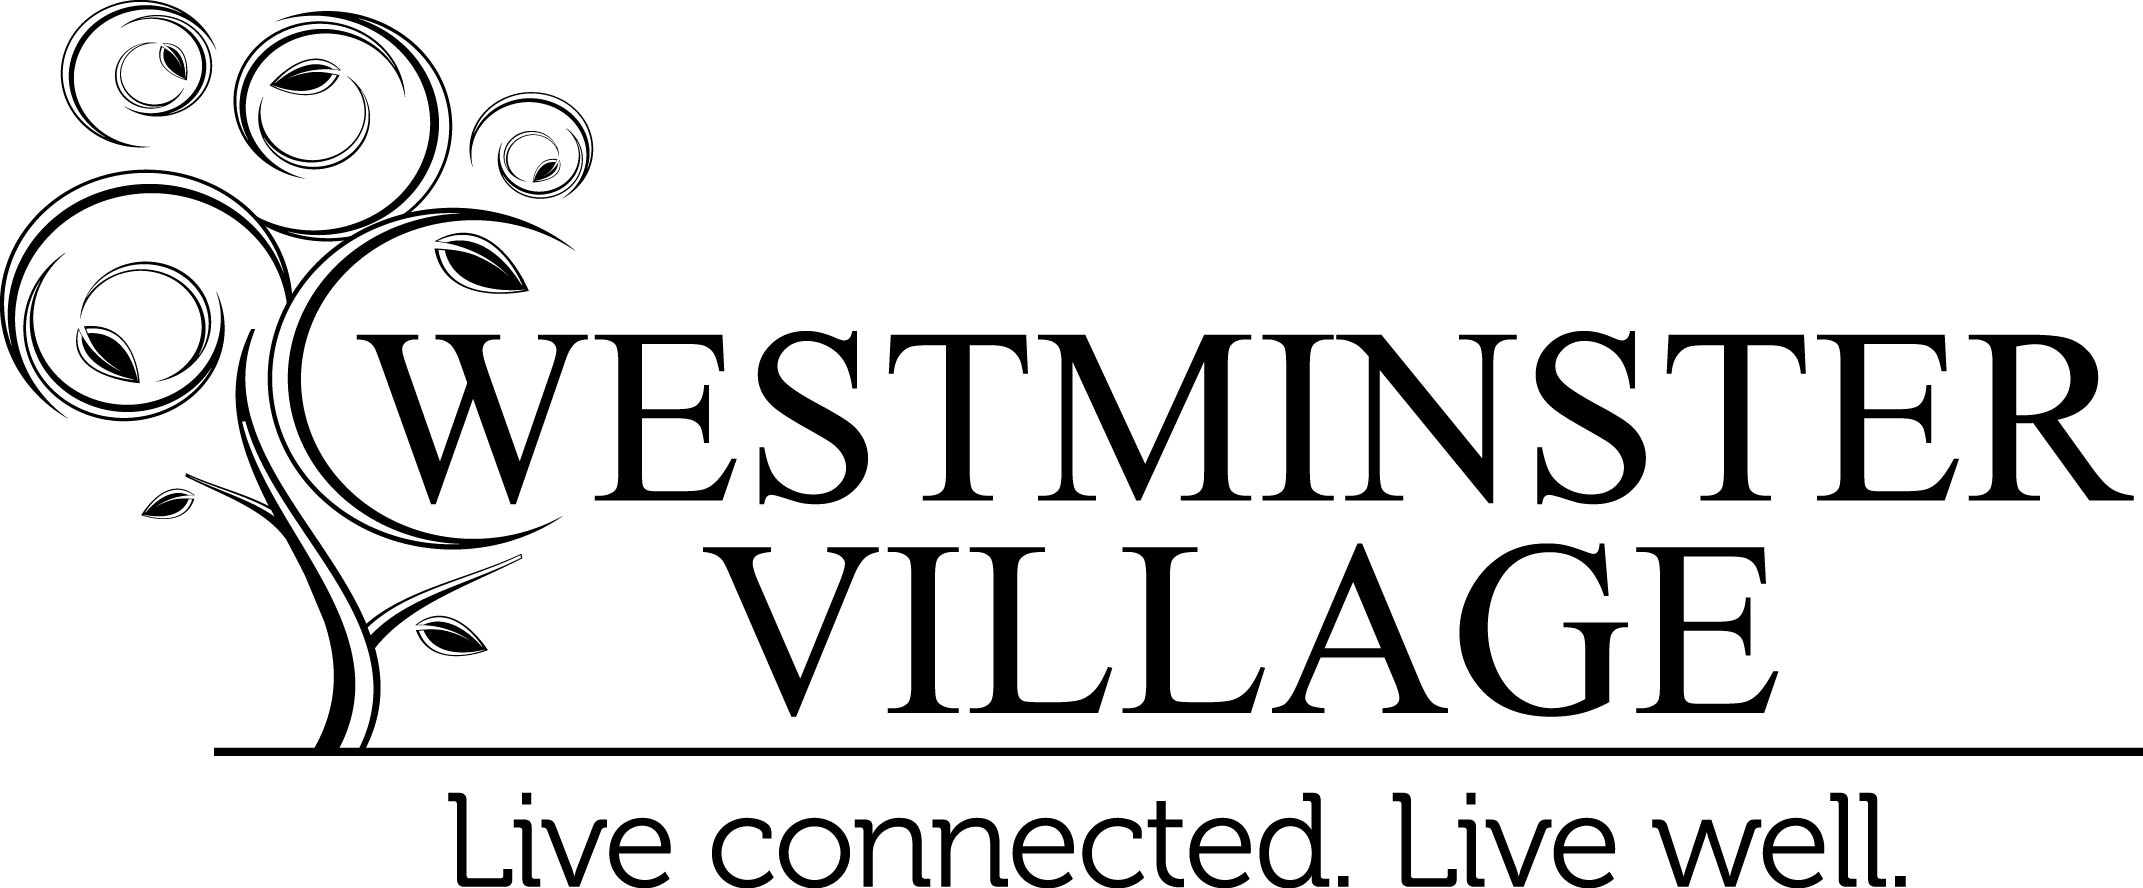 1. Westminster Village